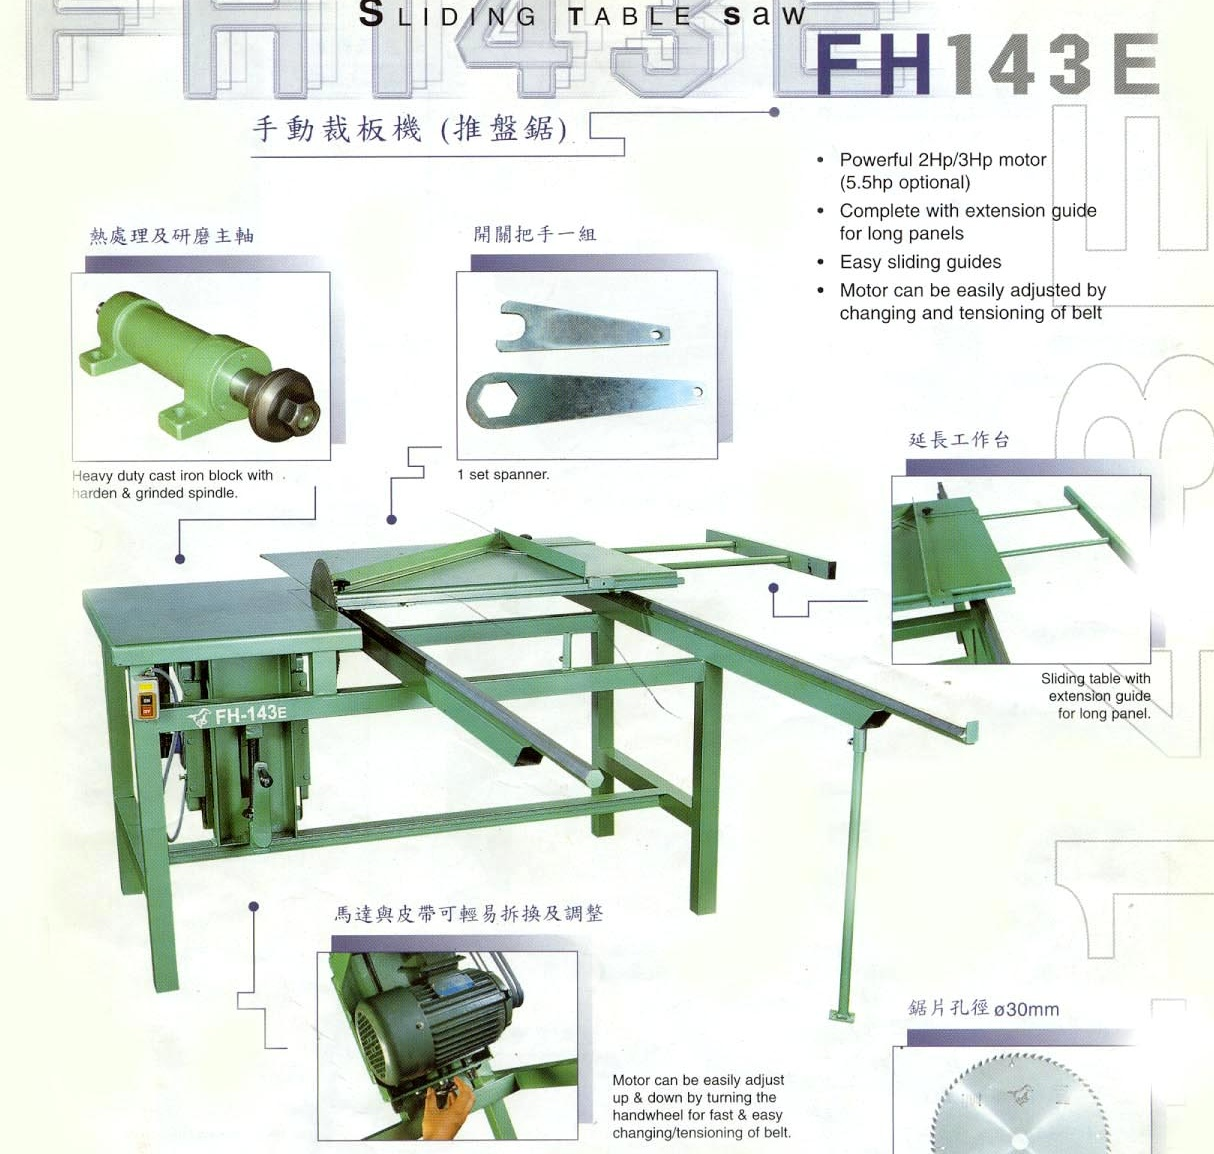 Table saw aiko 305mm sliding table saw 3 hp 3 phase aiko 305mm sliding table saw 3 hp 3 phase keyboard keysfo Gallery